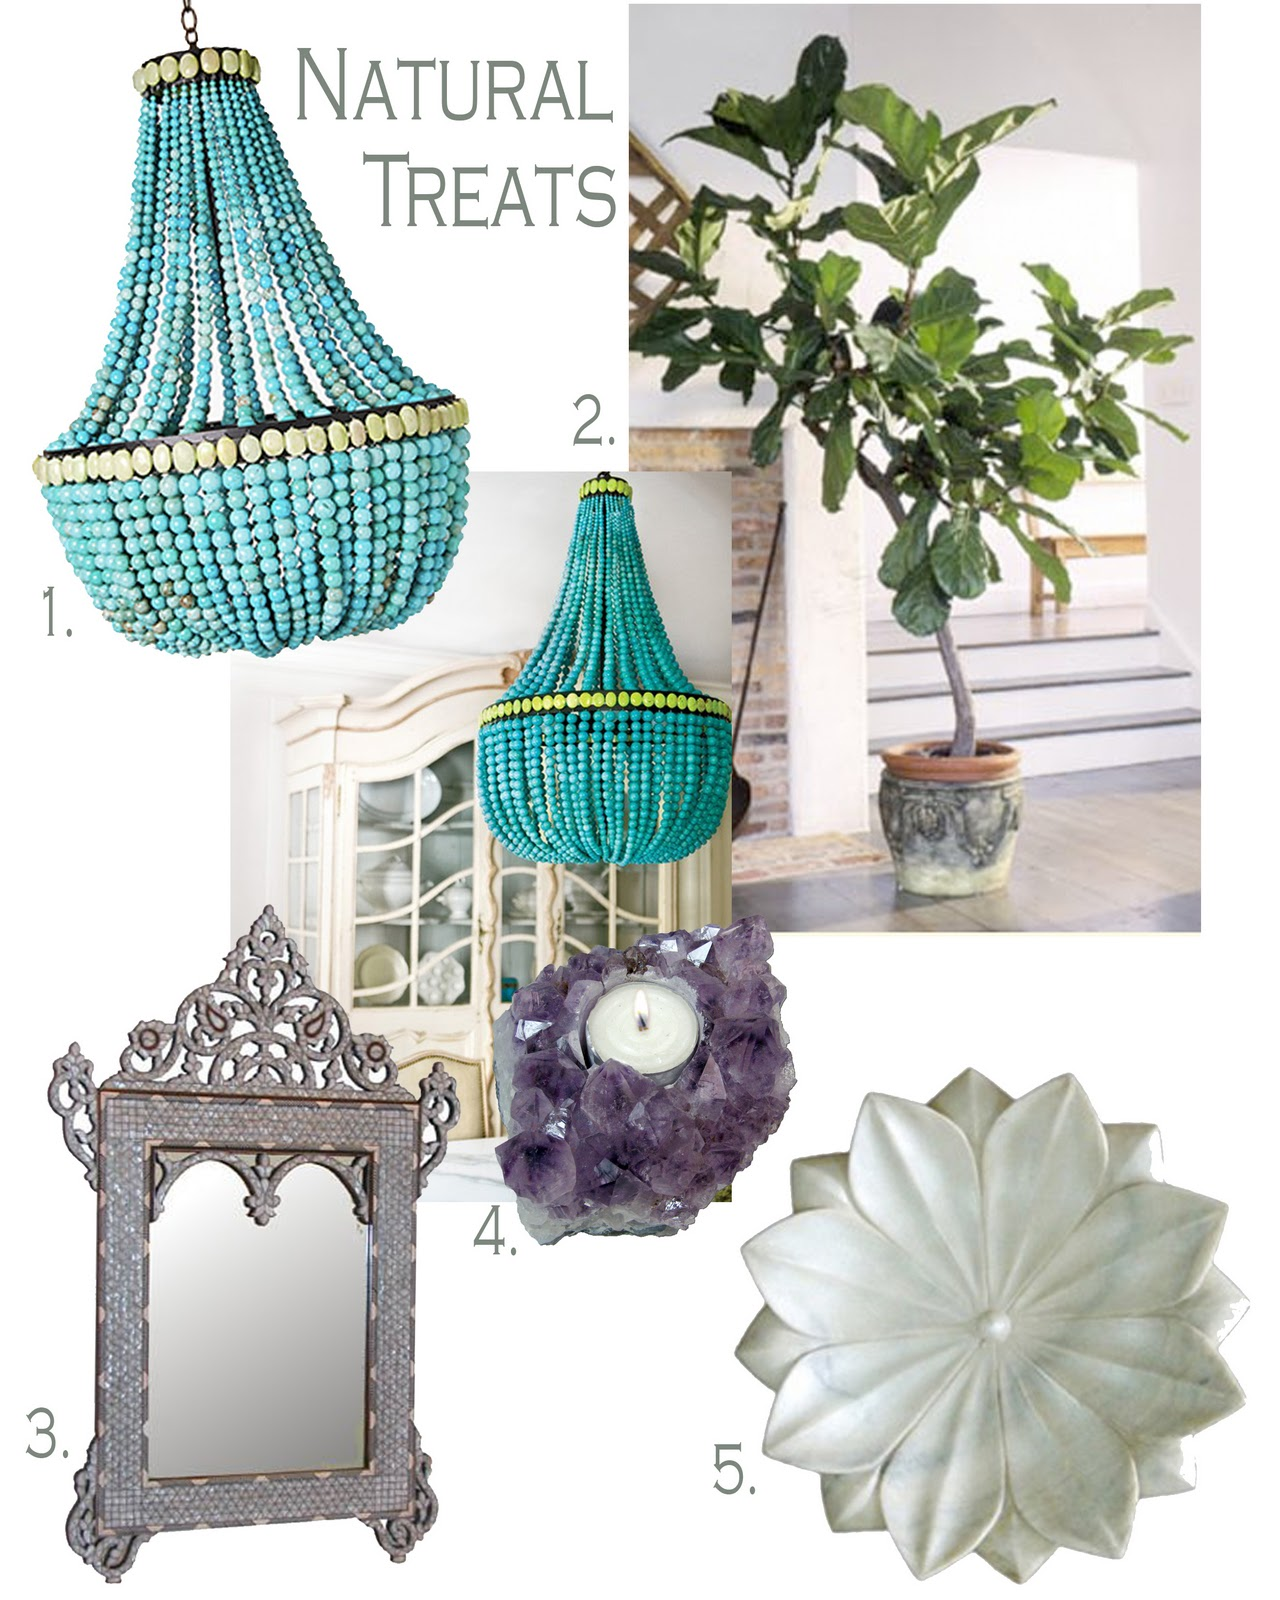 With spring just around the corner, it is time to celebrate what mother nature gave us! With accessories hand crafted by the earths natural treats:    1. Turquoise beaded chandelier, comes in different natural stones 2. A fig tree plant, designer indoor tree 3. Mother of pearl inlaid mirror 4. Amathyst candle holder 5. Marble carved lotus flower bowl